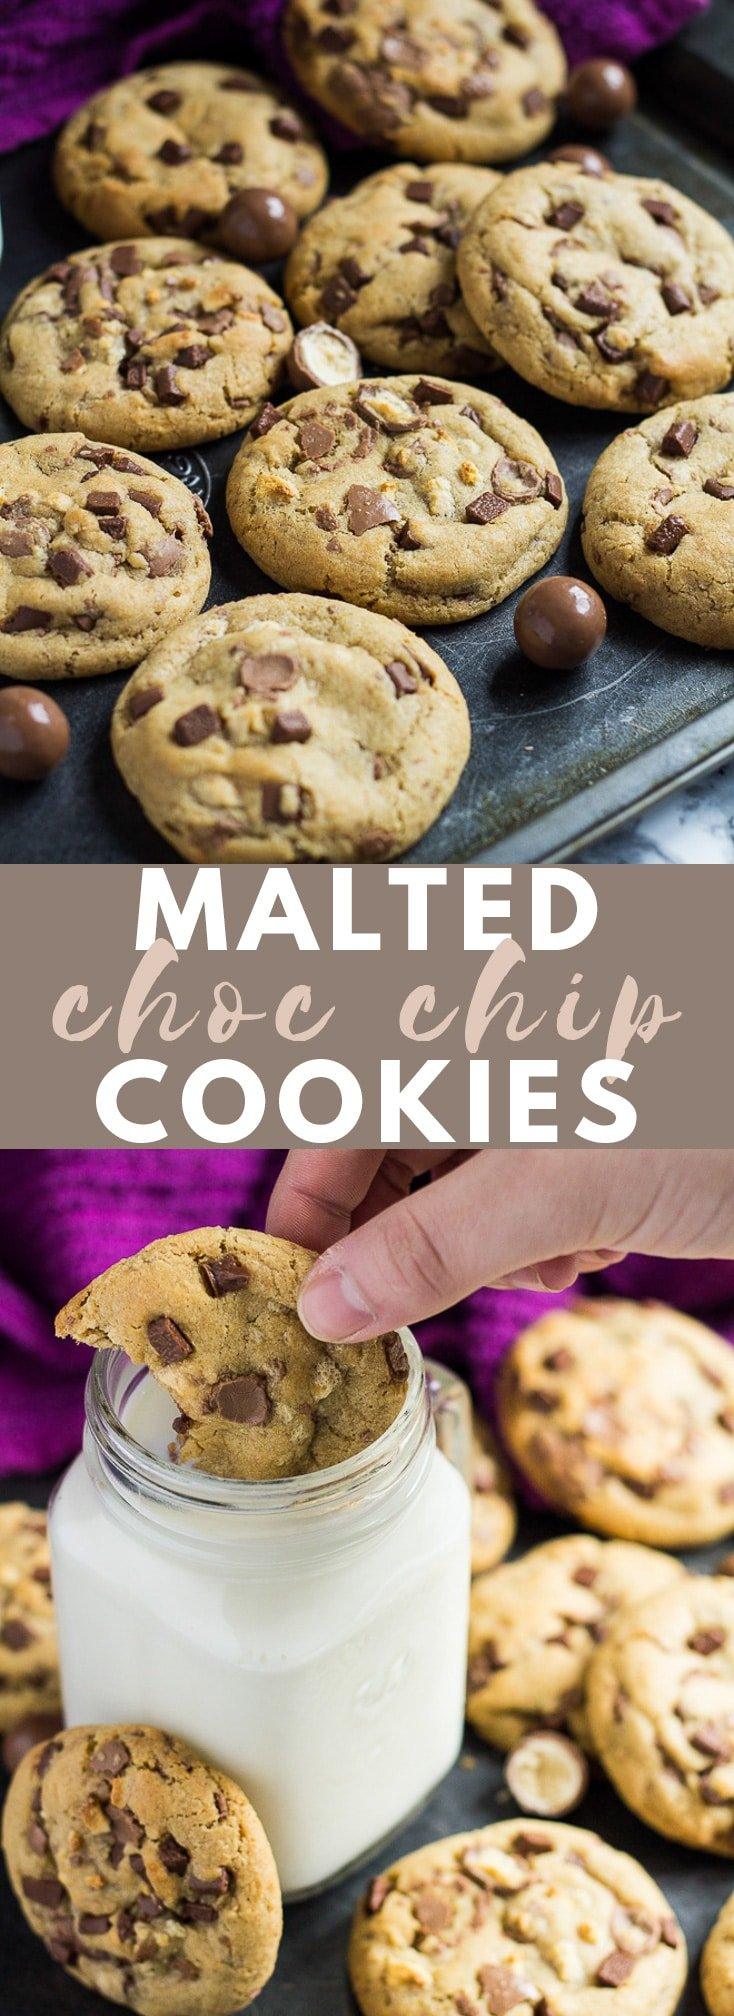 Malted Chocolate Chip Cookies- Deliciously thick, soft-baked cookies infused with malted milk powder, and loaded with Maltesers and chocolate chips! #malted #chocolatechipcookies #cookierecipes